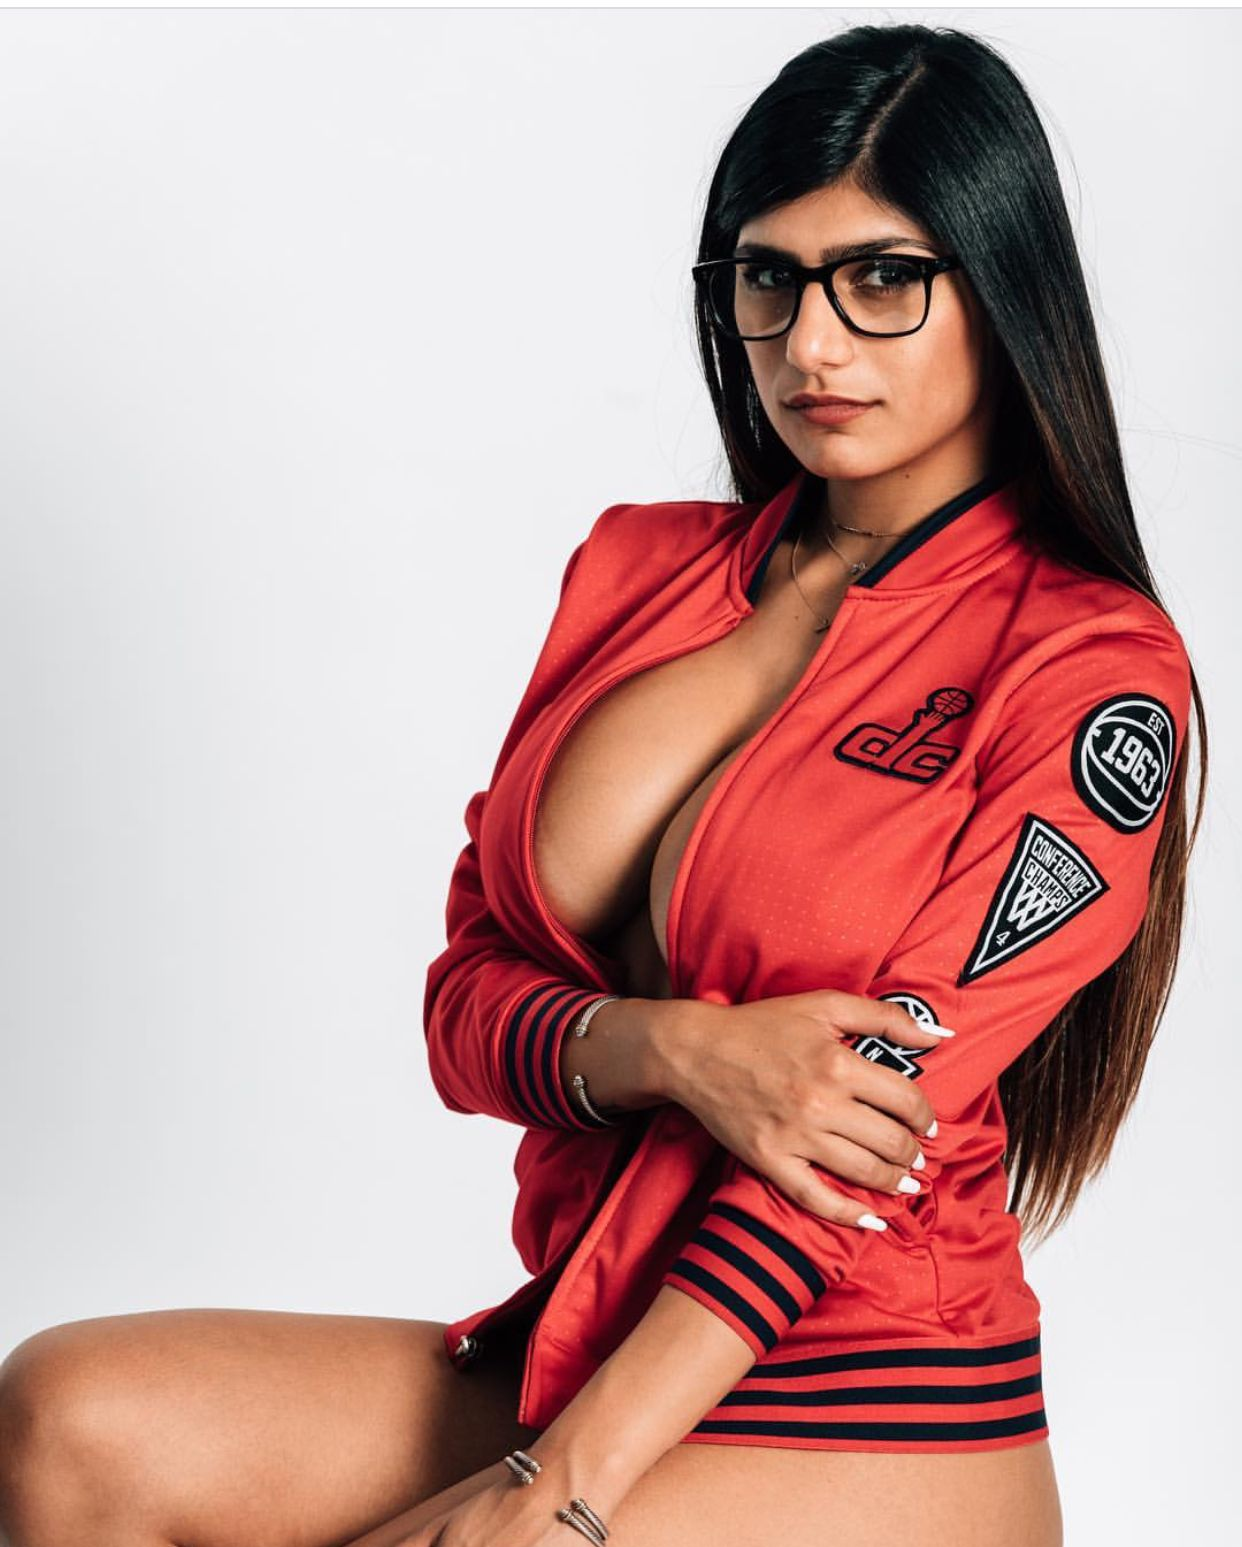 Amazing tits mia khalifa getting hammered hard by bbc - 4 4